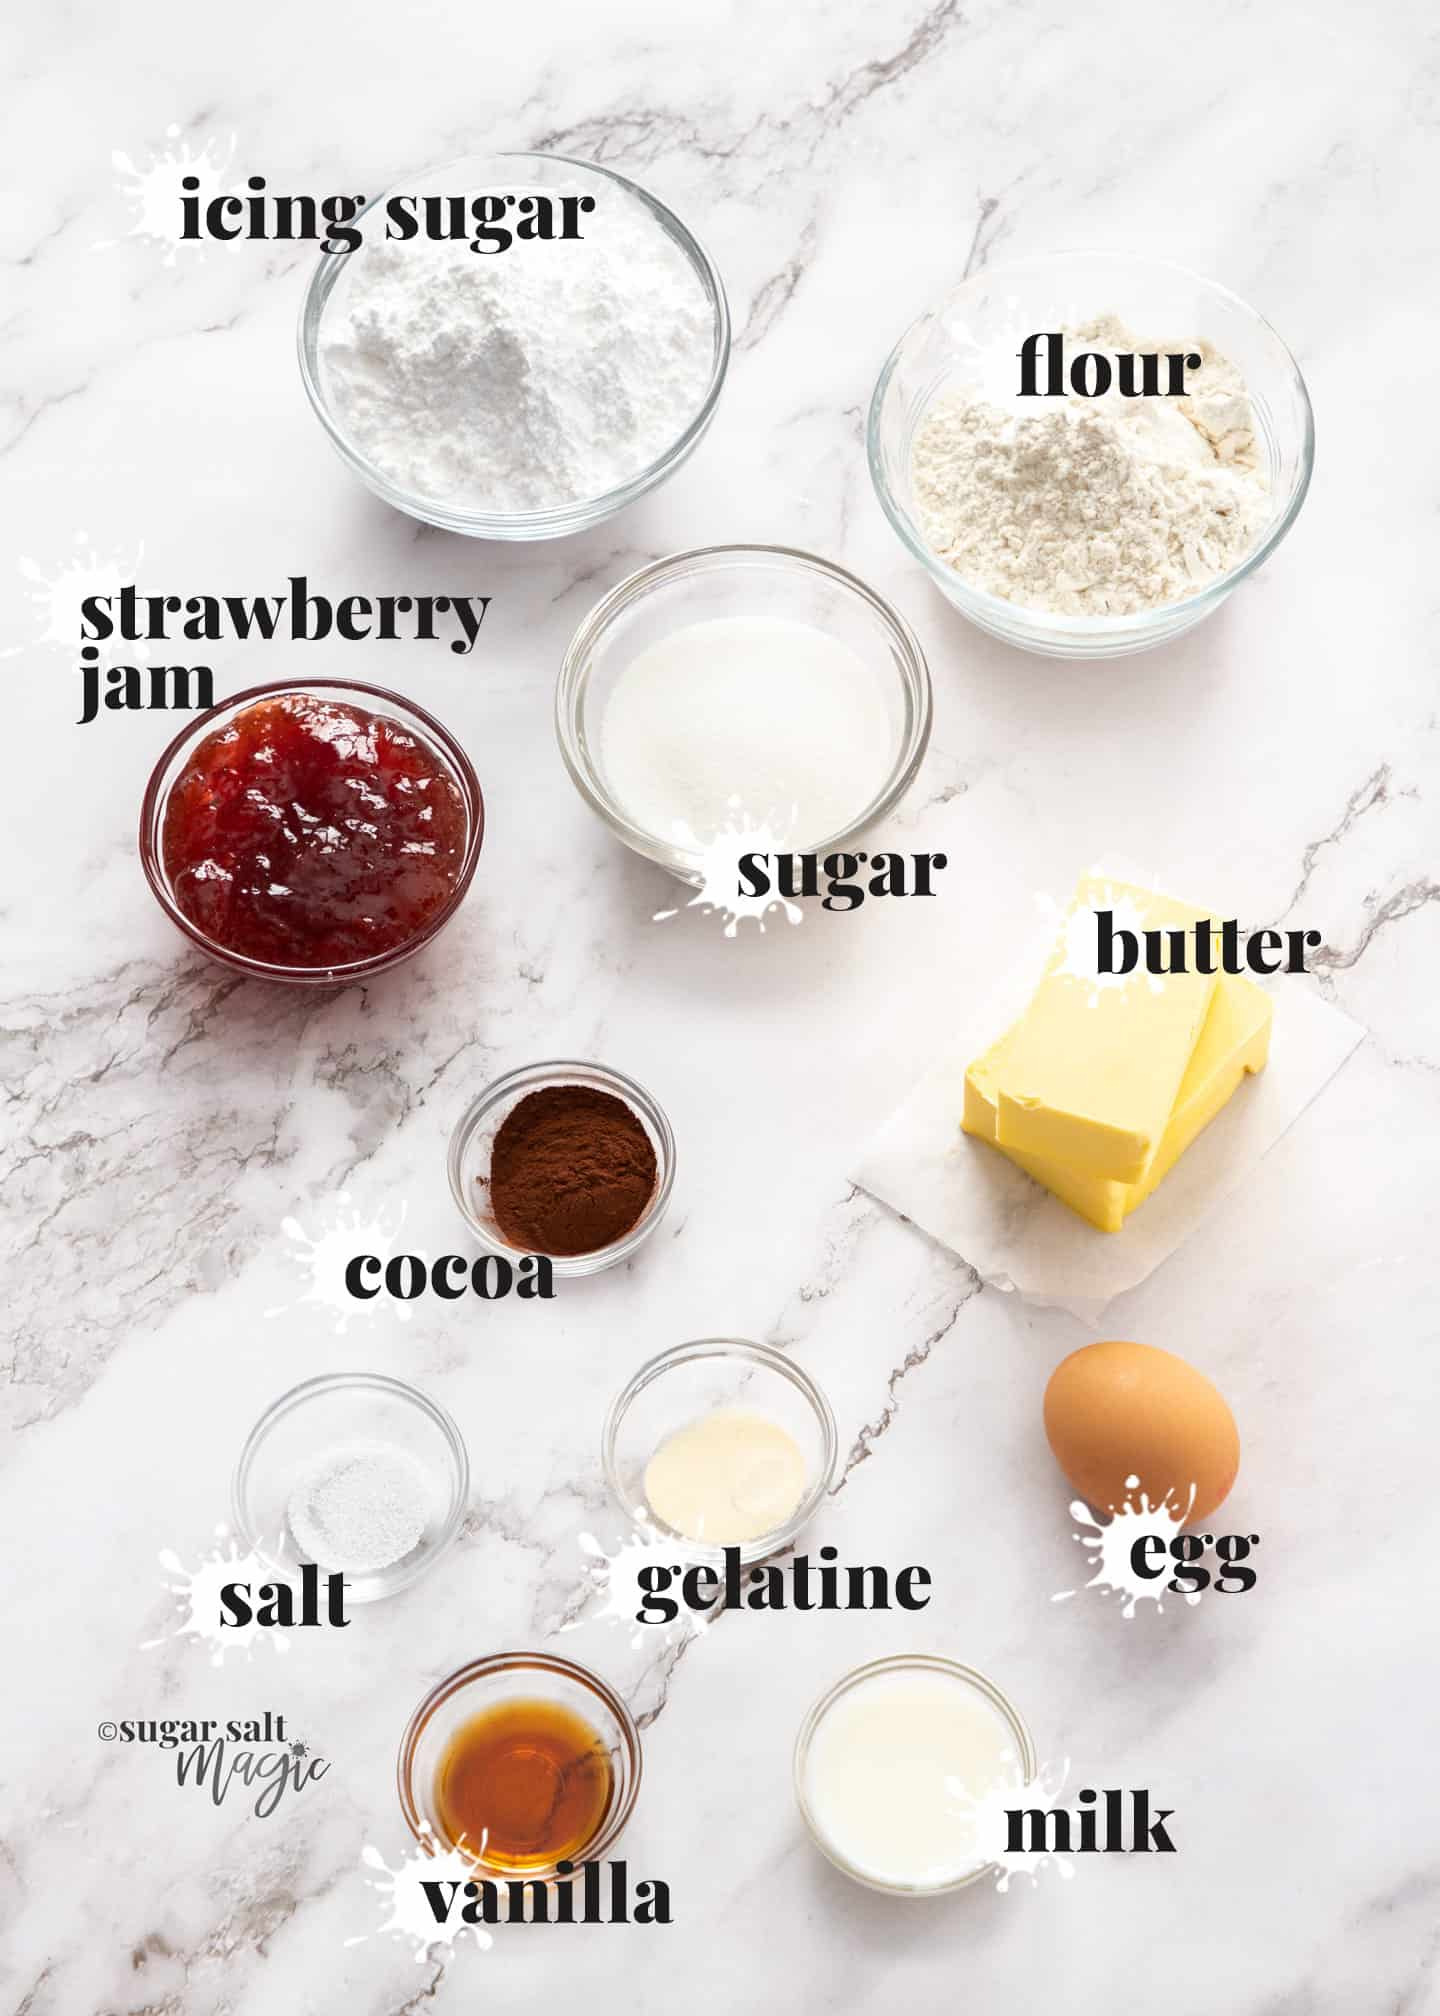 Ingredients for neenish tarts on a white marble bench top.